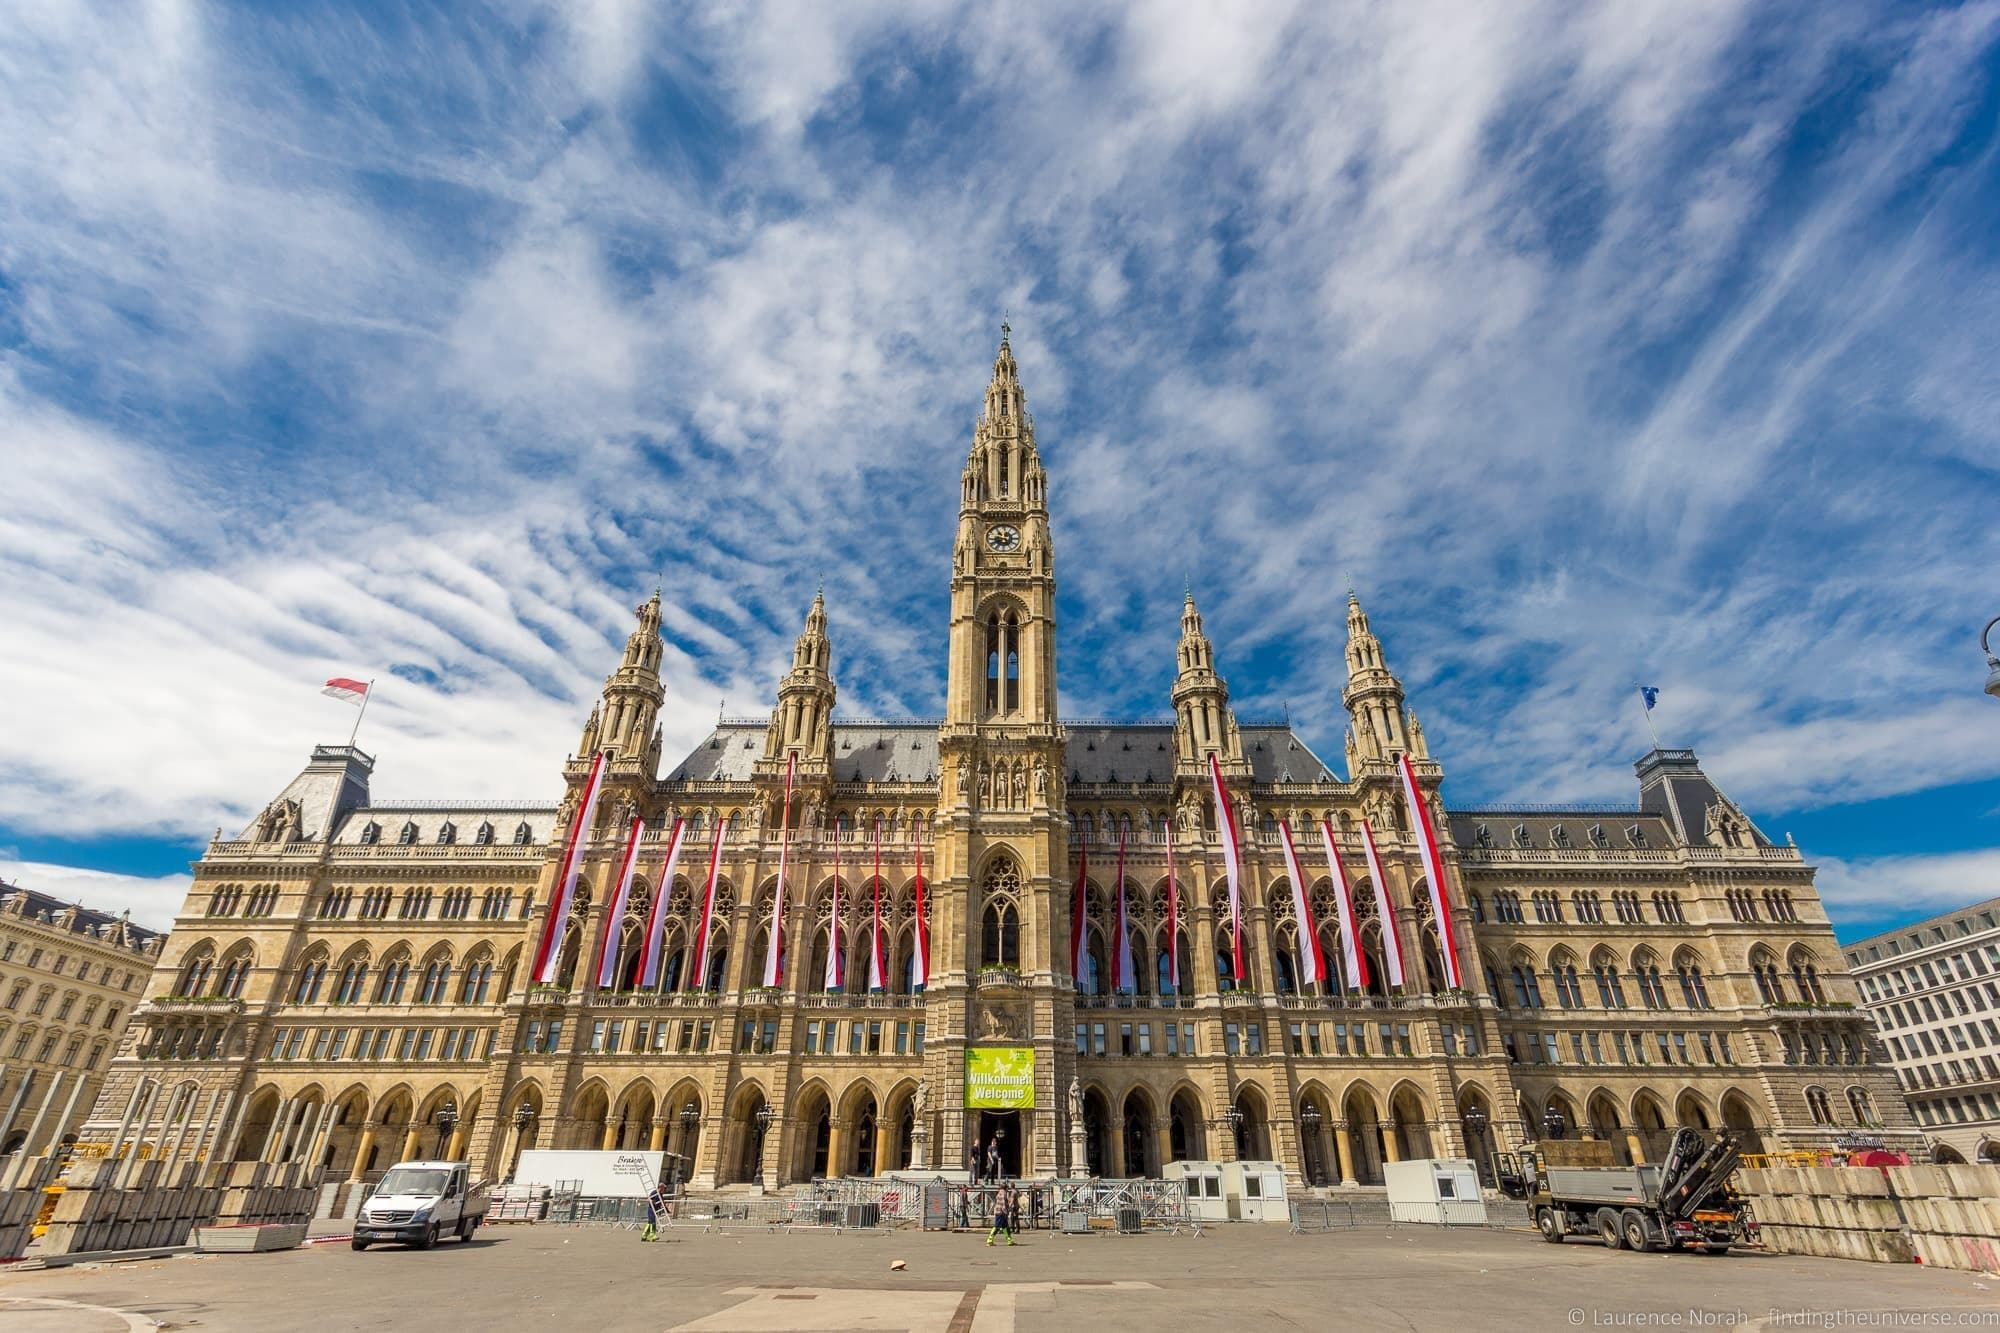 Vienna travel guide for first-time visitors - Best Places to Visit in Europe - planningforeurope.com (1)